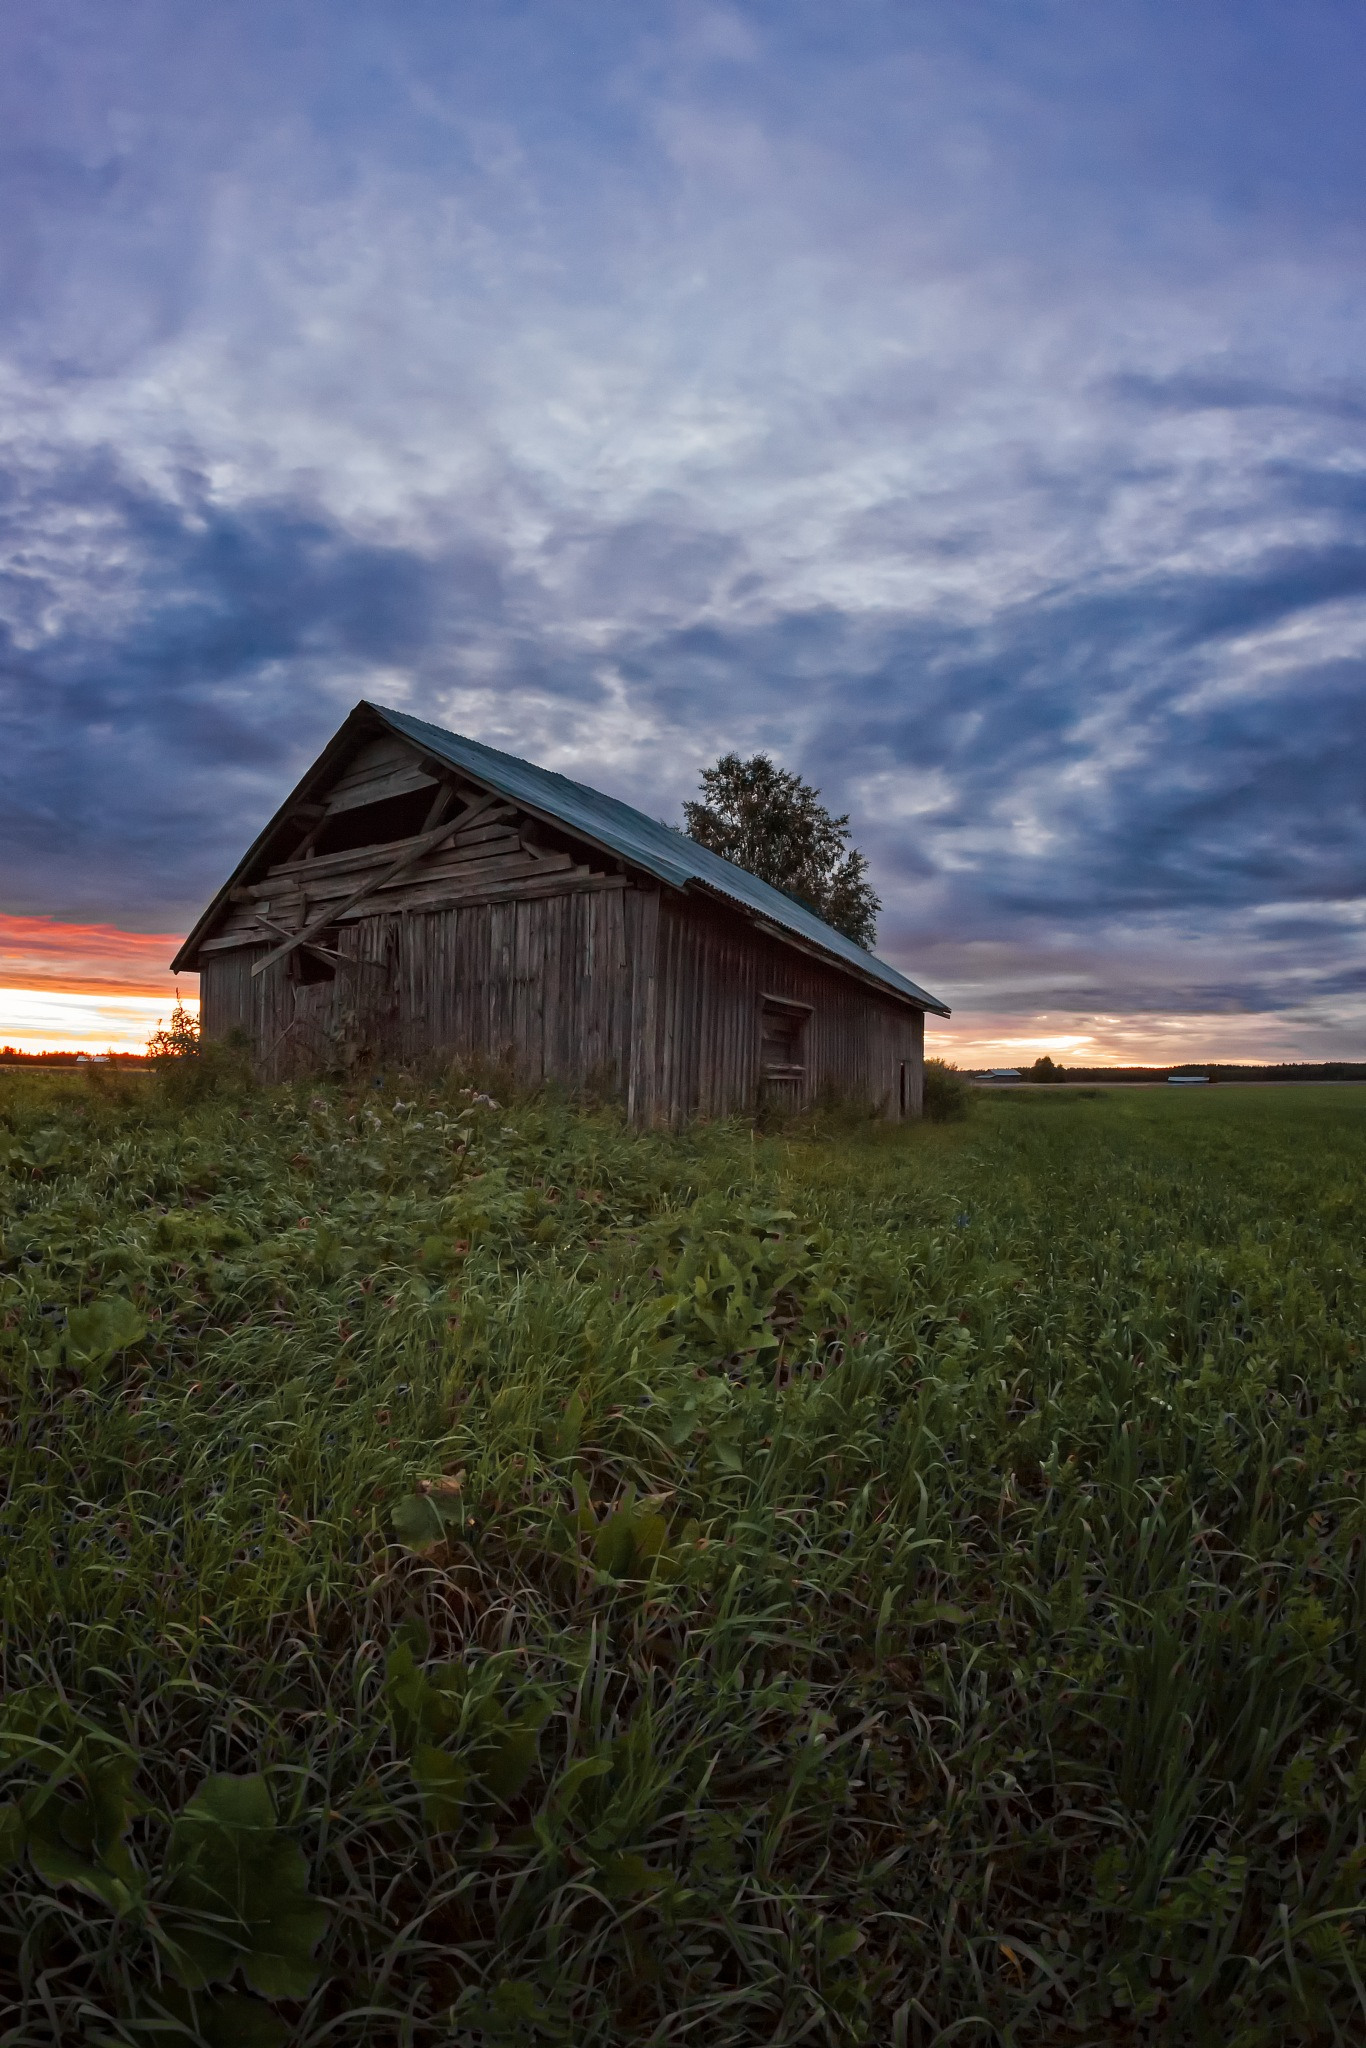 Sunset Clouds And An Old Barn House by J.P. Heinovirta